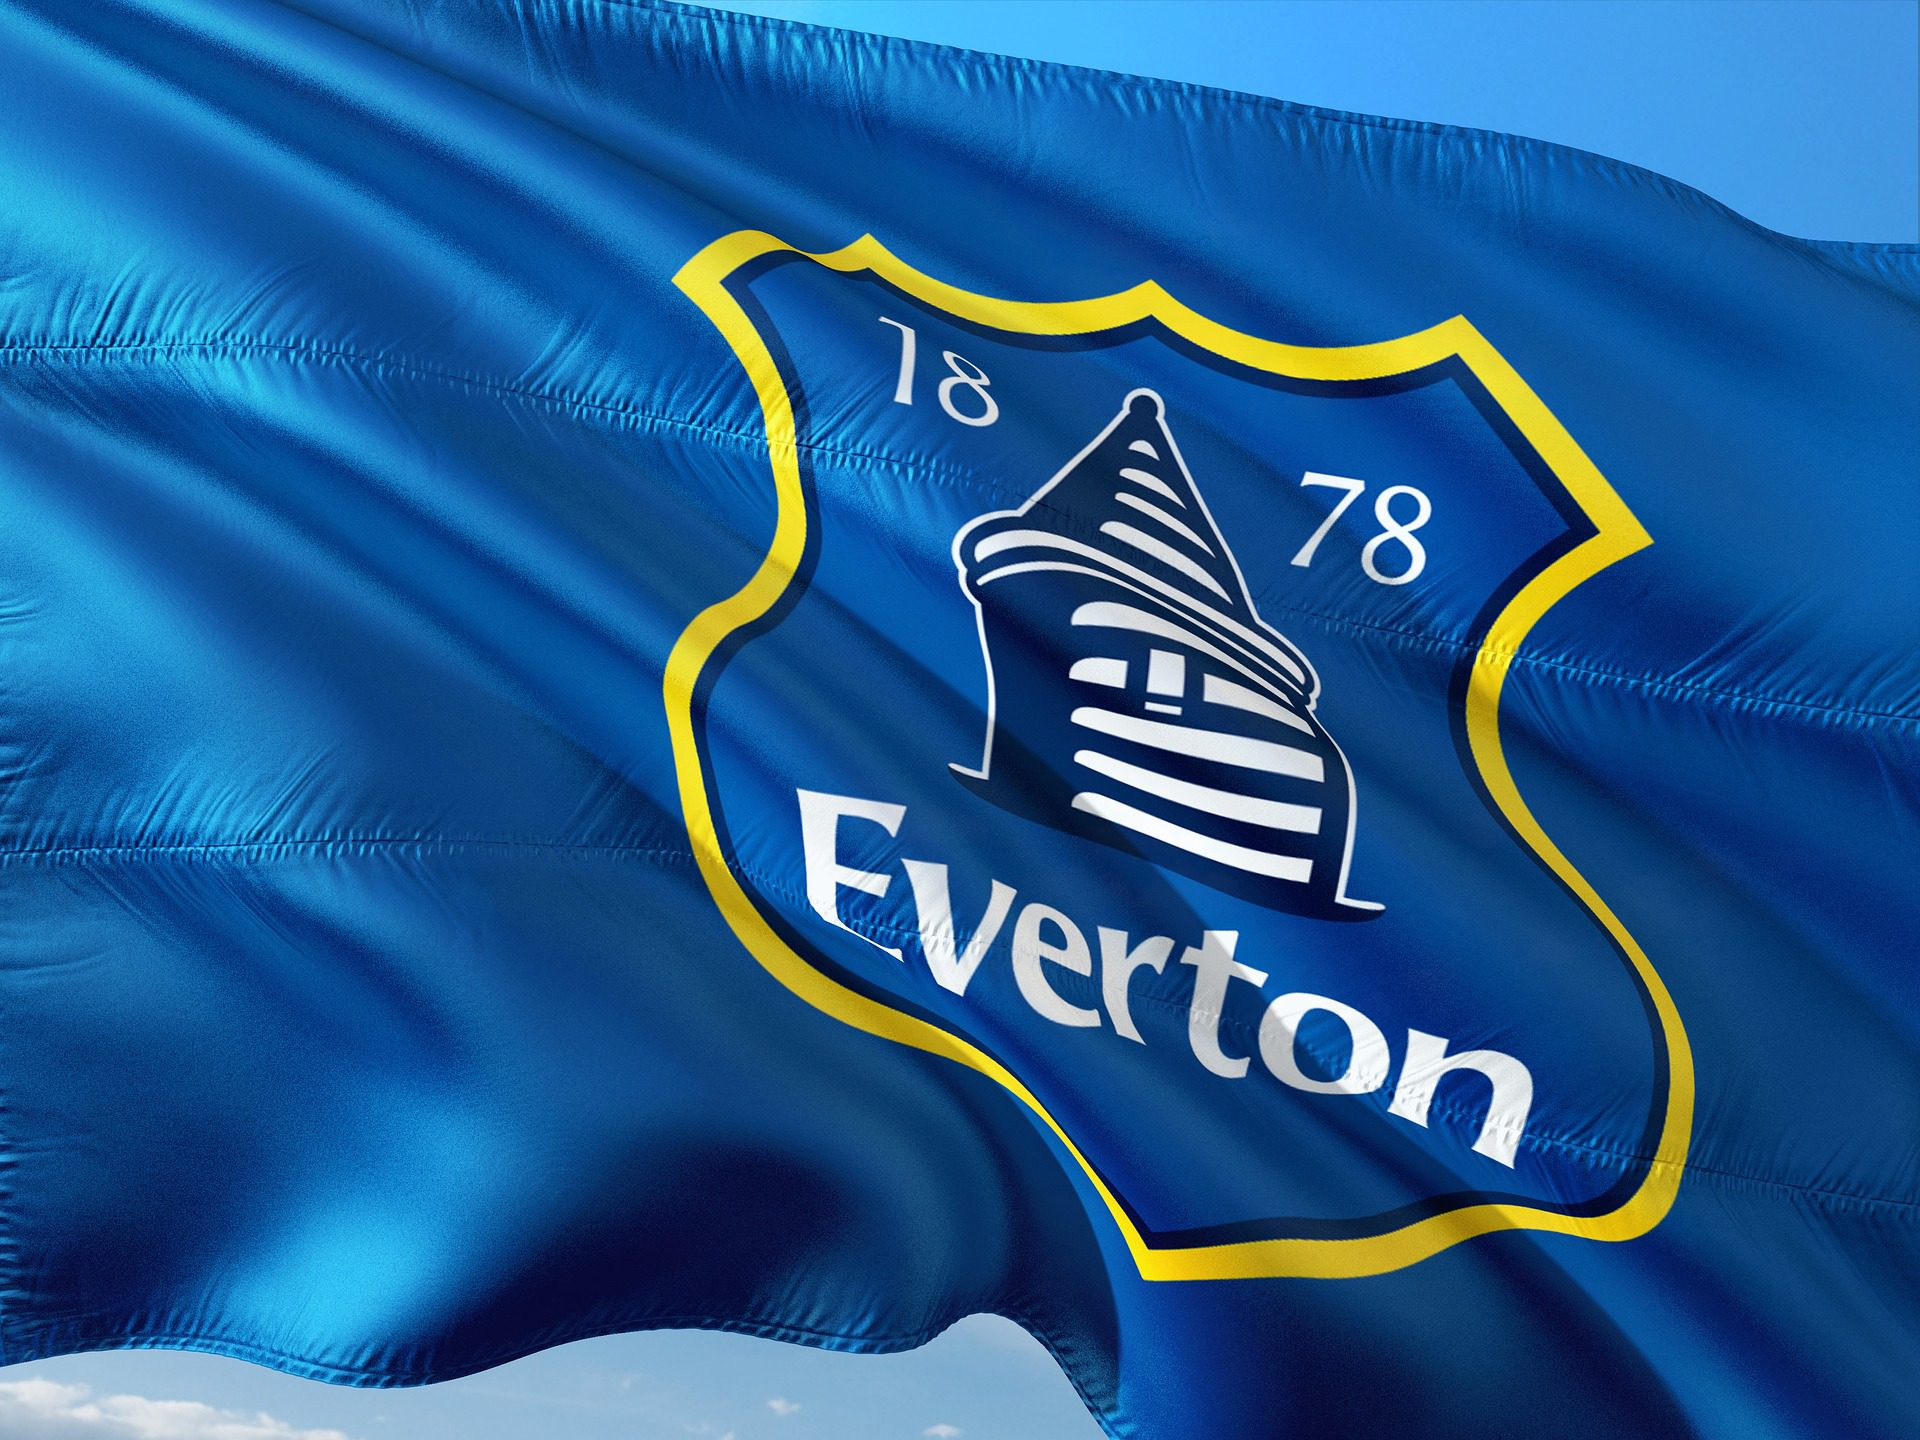 Everton's new and old football stadiums will bring investment to Liverpool